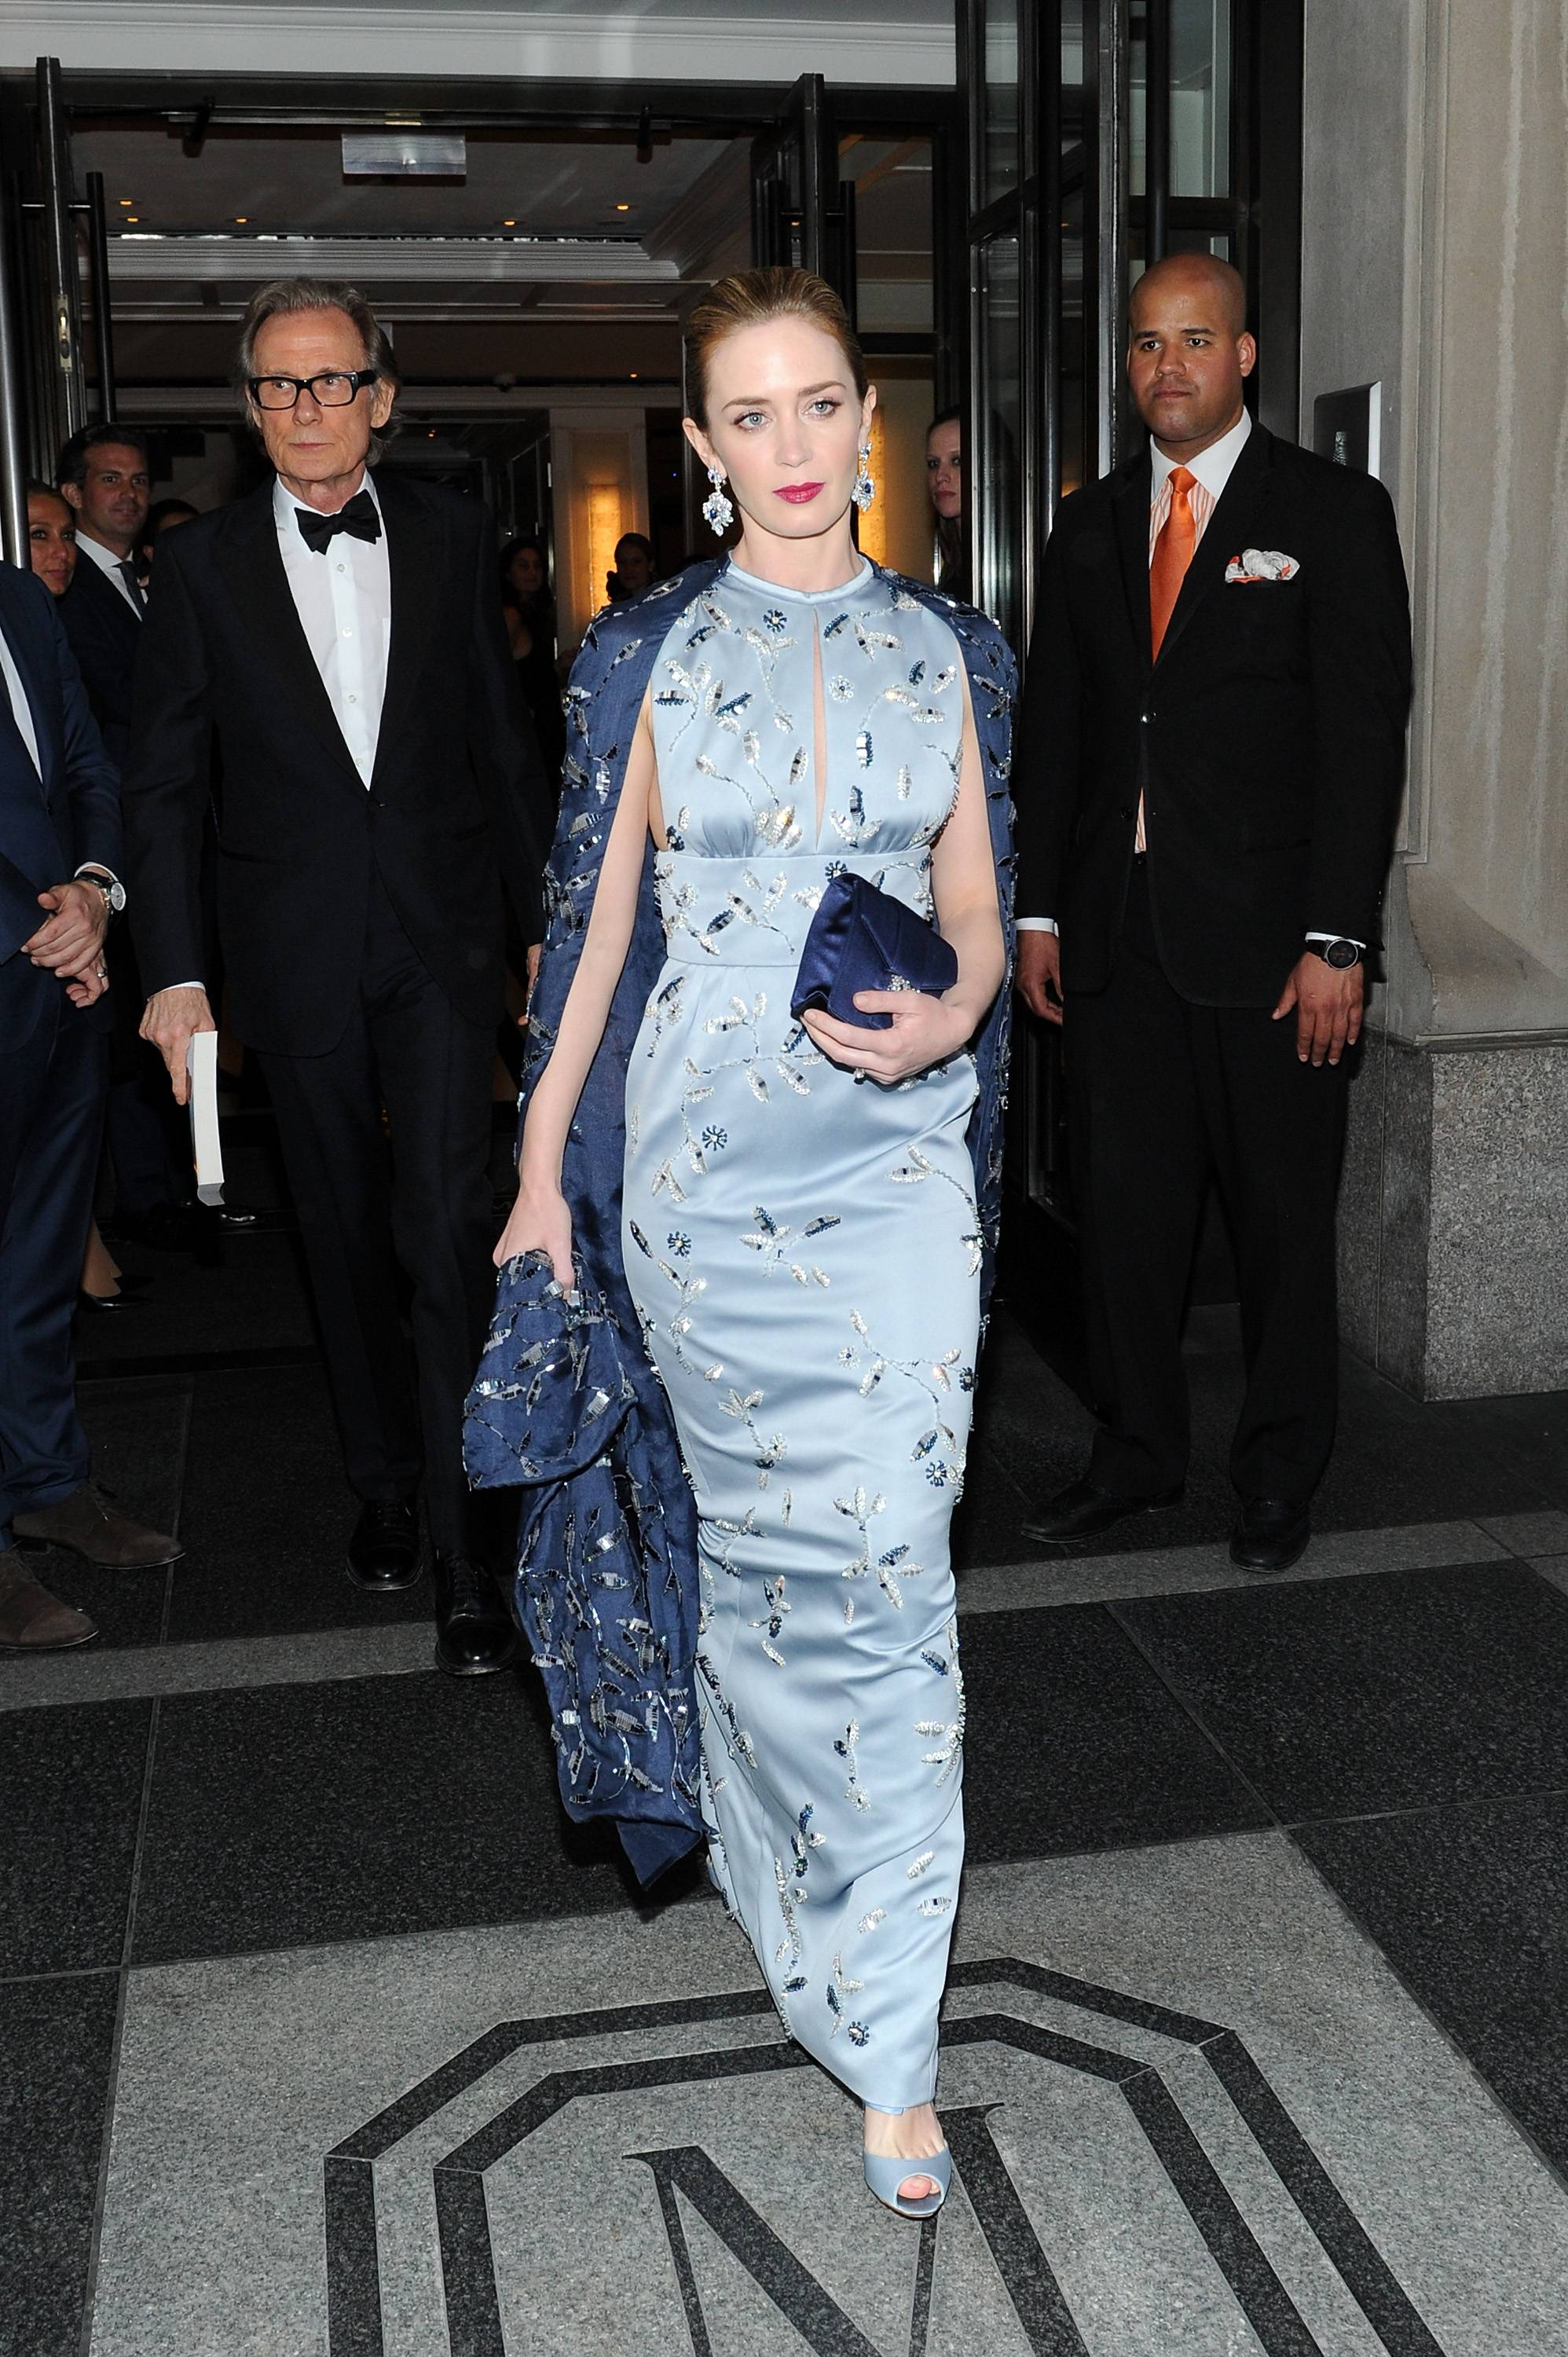 NEW YORK, NY - MAY 04:  Emily Blunt (R) and Bill Nighy depart The Mark Hotel for the Met Gala at the Metropolitan Museum of Art on May 4, 2015 in New York City.  (Photo by Andrew Toth/Getty Images for The Mark Hotel)